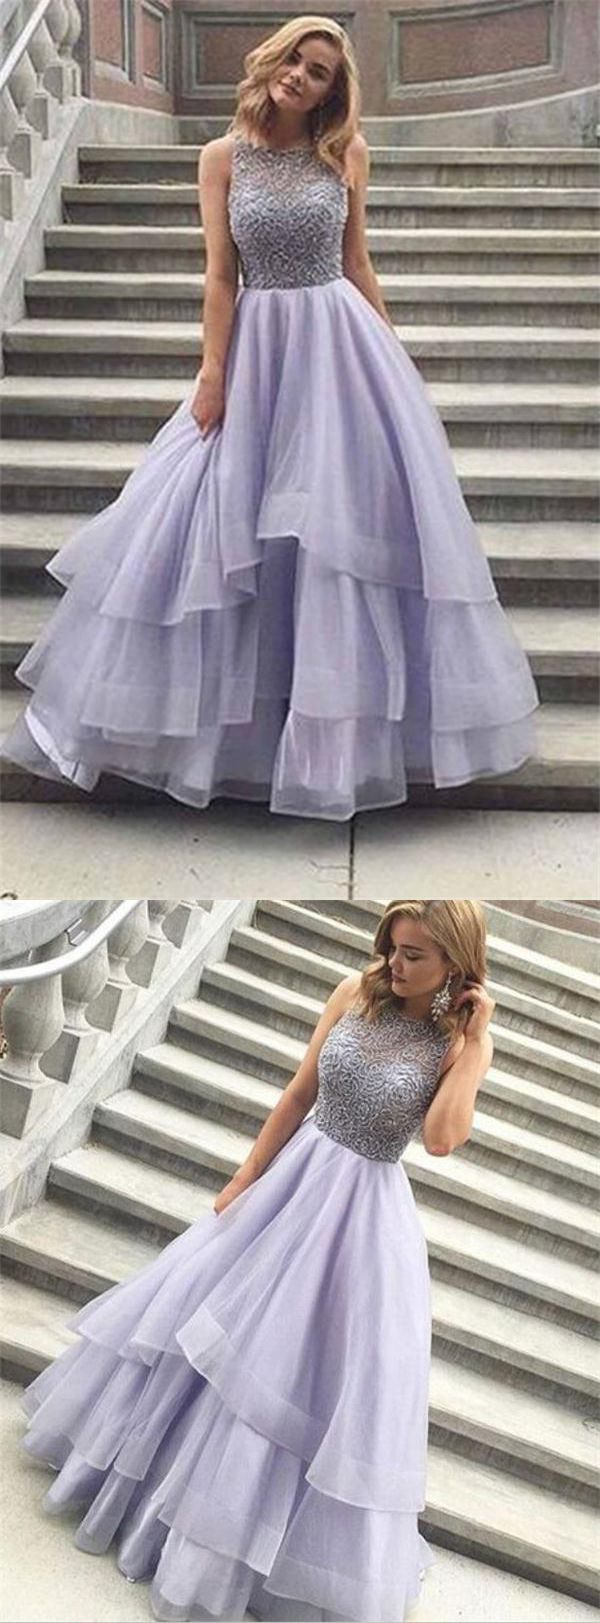 Ball Gown Prom Dresses,Quinceanera Dresses,Princess Dresses,Long Prom Dresses,A-line Prom Dresses,Cute Dresses,Lavender Prom Dresses,Simple Prom Dresses,Cheap Prom Dresses,Prom Dress,Prom Dresses,Elegant Prom Dresses,Evening Dresses,Women Dresses,Prom Gowns,Graduation Dresses,Sweet 16 Dresses,Fashion Dresses,Prom Dresses 2017,Prom Dresses For Teens